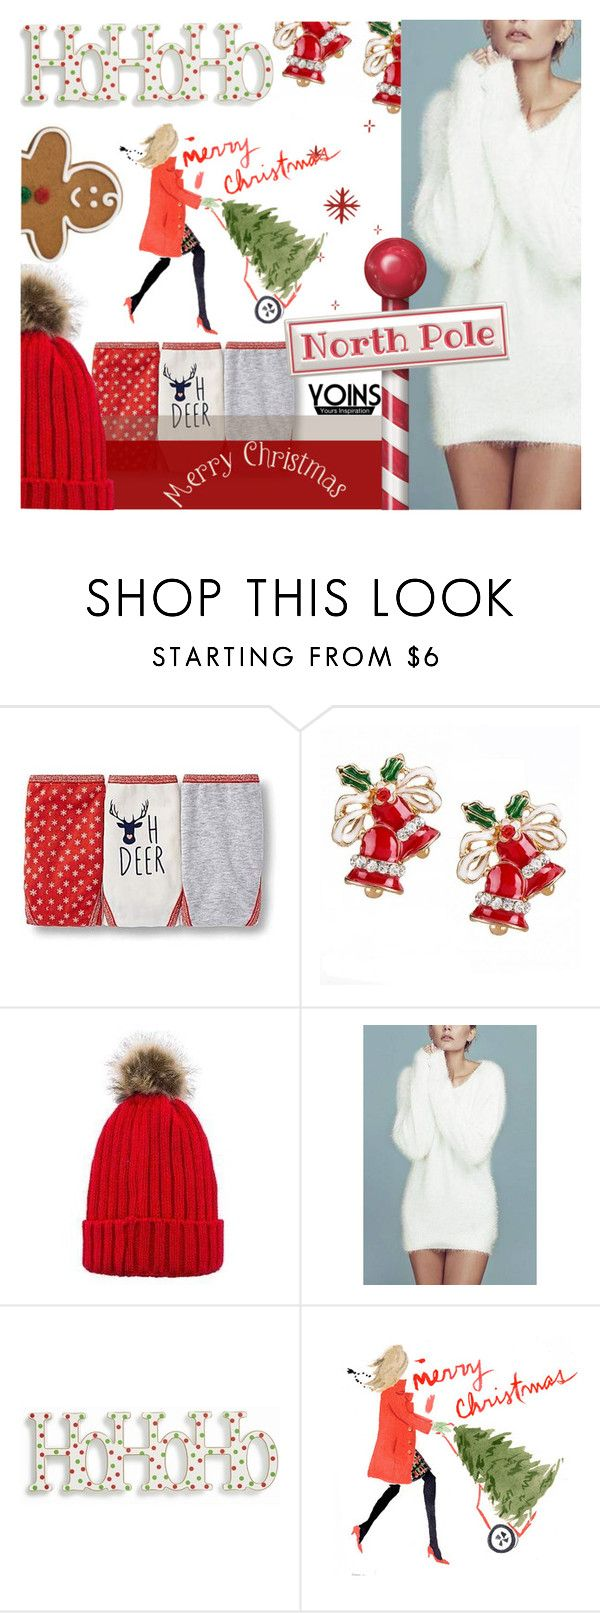 """""""#HoHoHoYoins"""" by juromi ❤ liked on Polyvore featuring K&K Interiors, yoins, yoinscollection and loveyoins"""